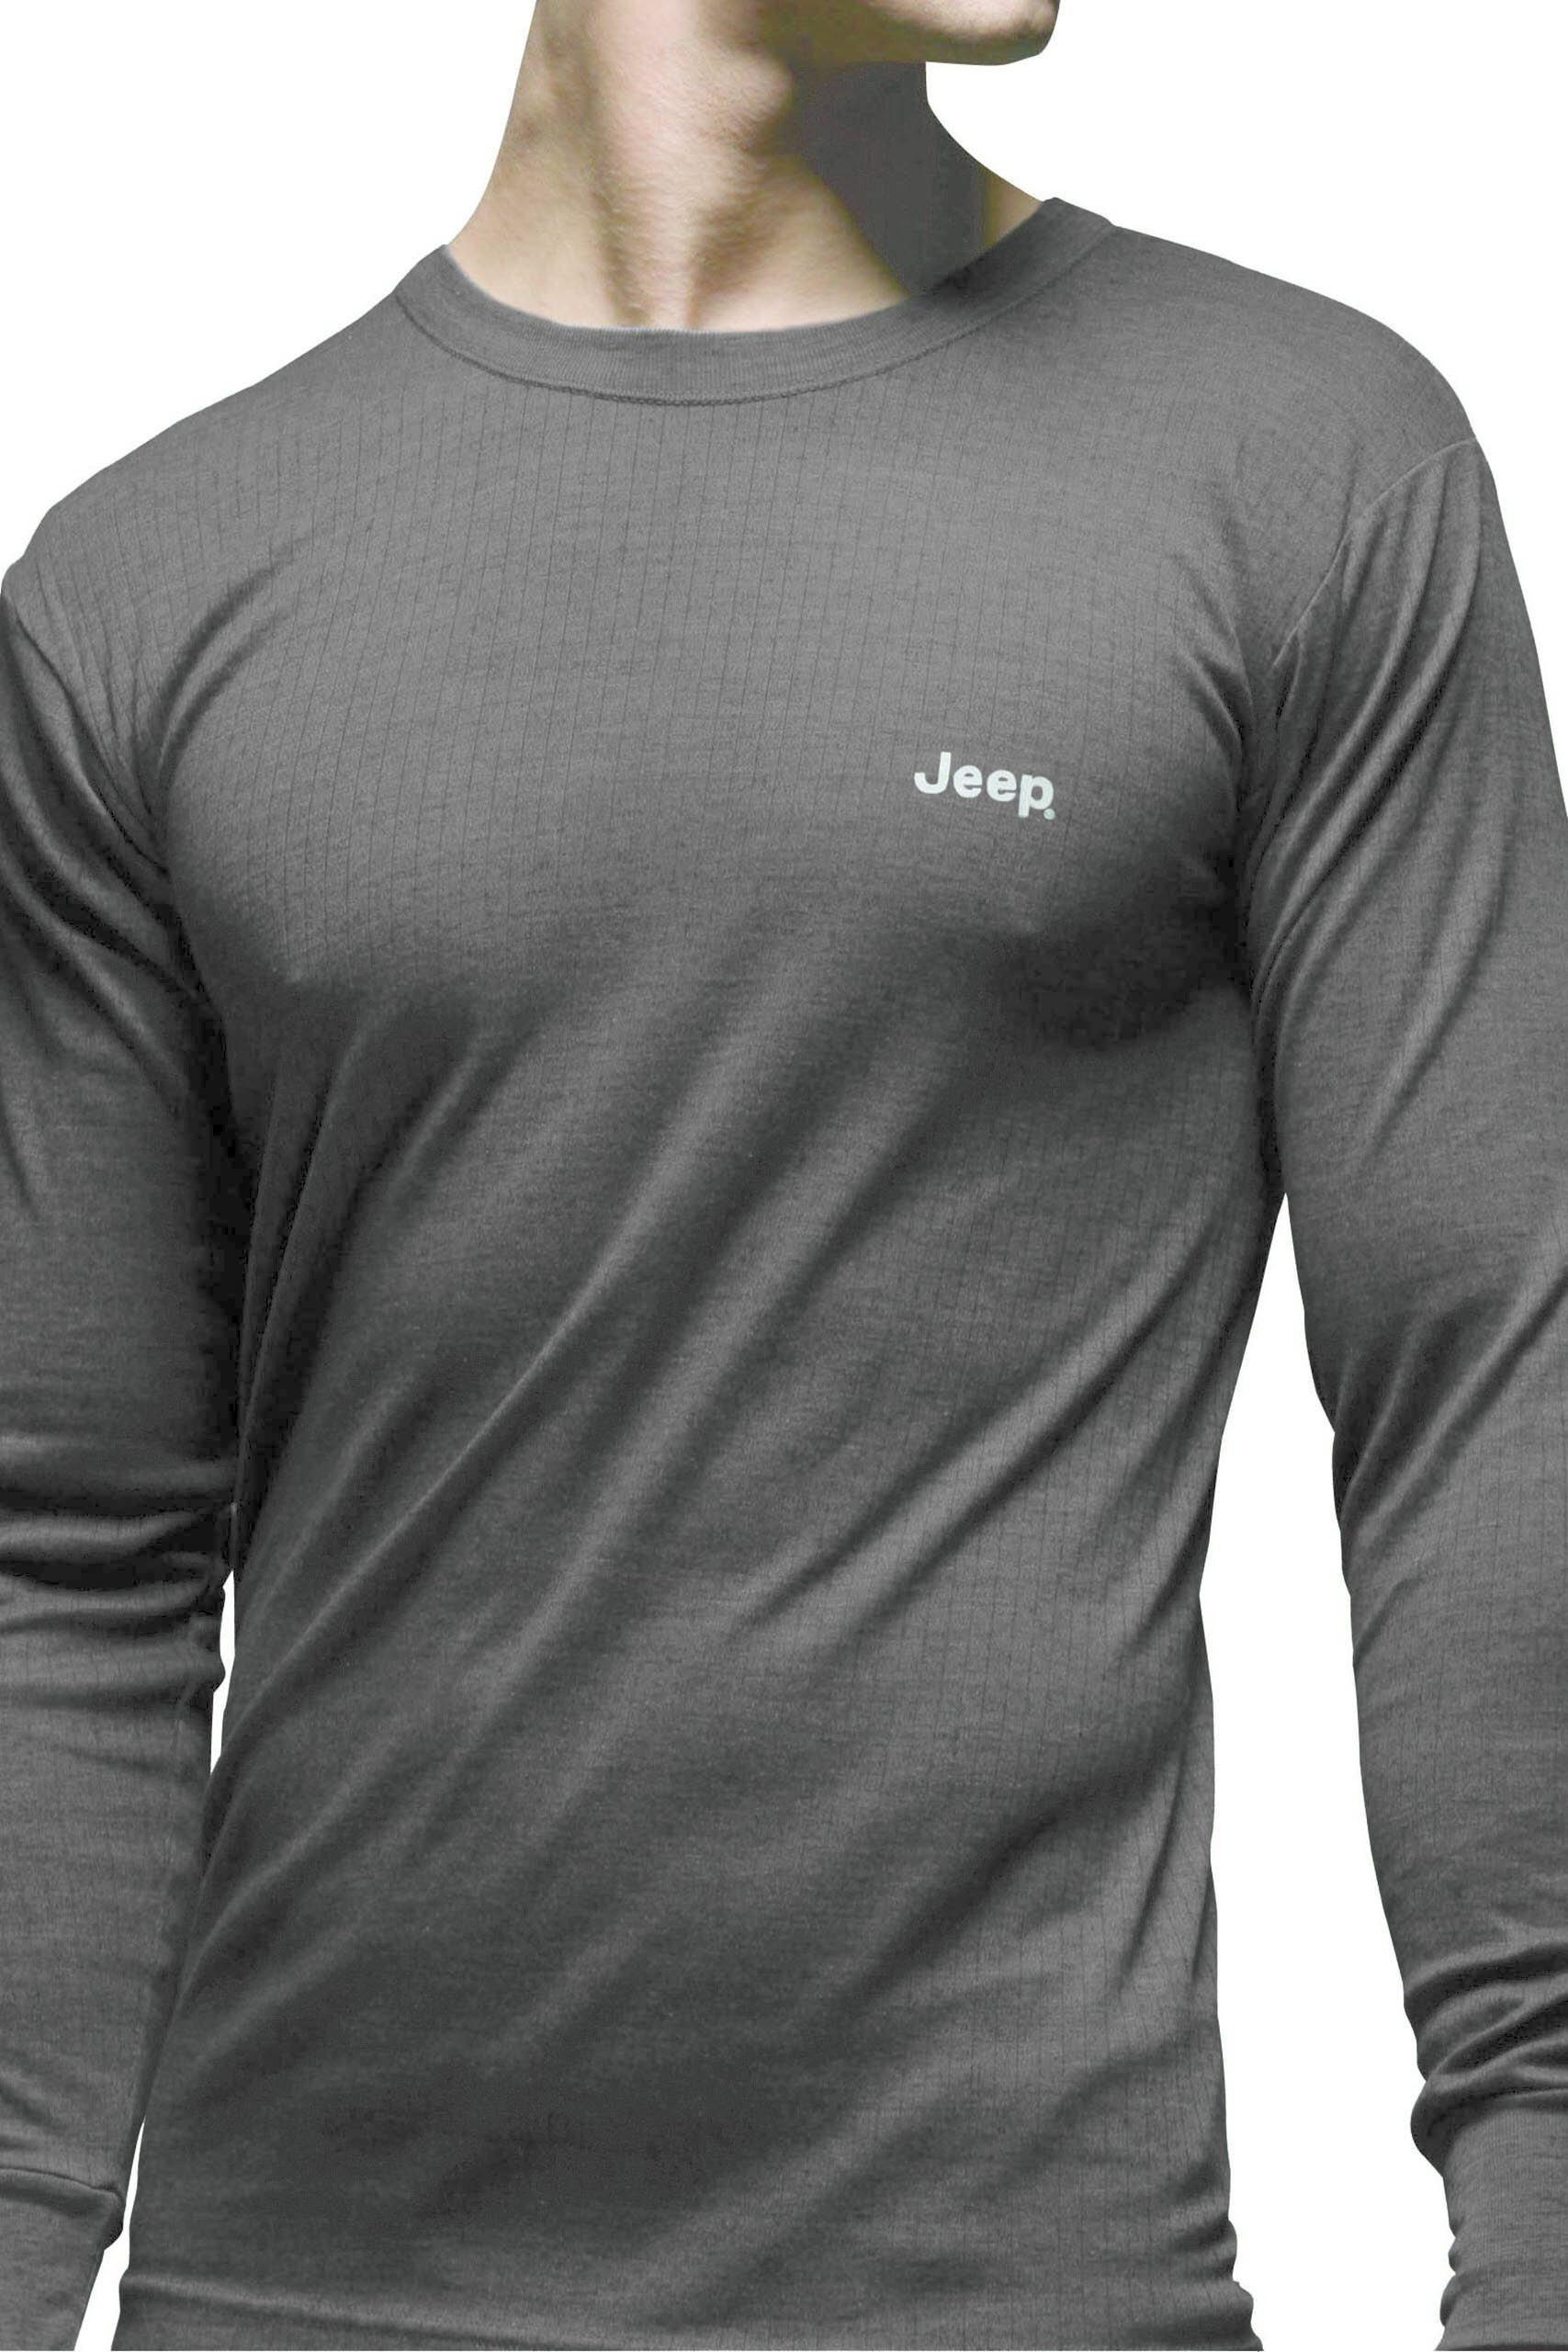 Image of 1 Pack Grey Long Sleeved Thermal T-Shirt Men's Large - Jeep